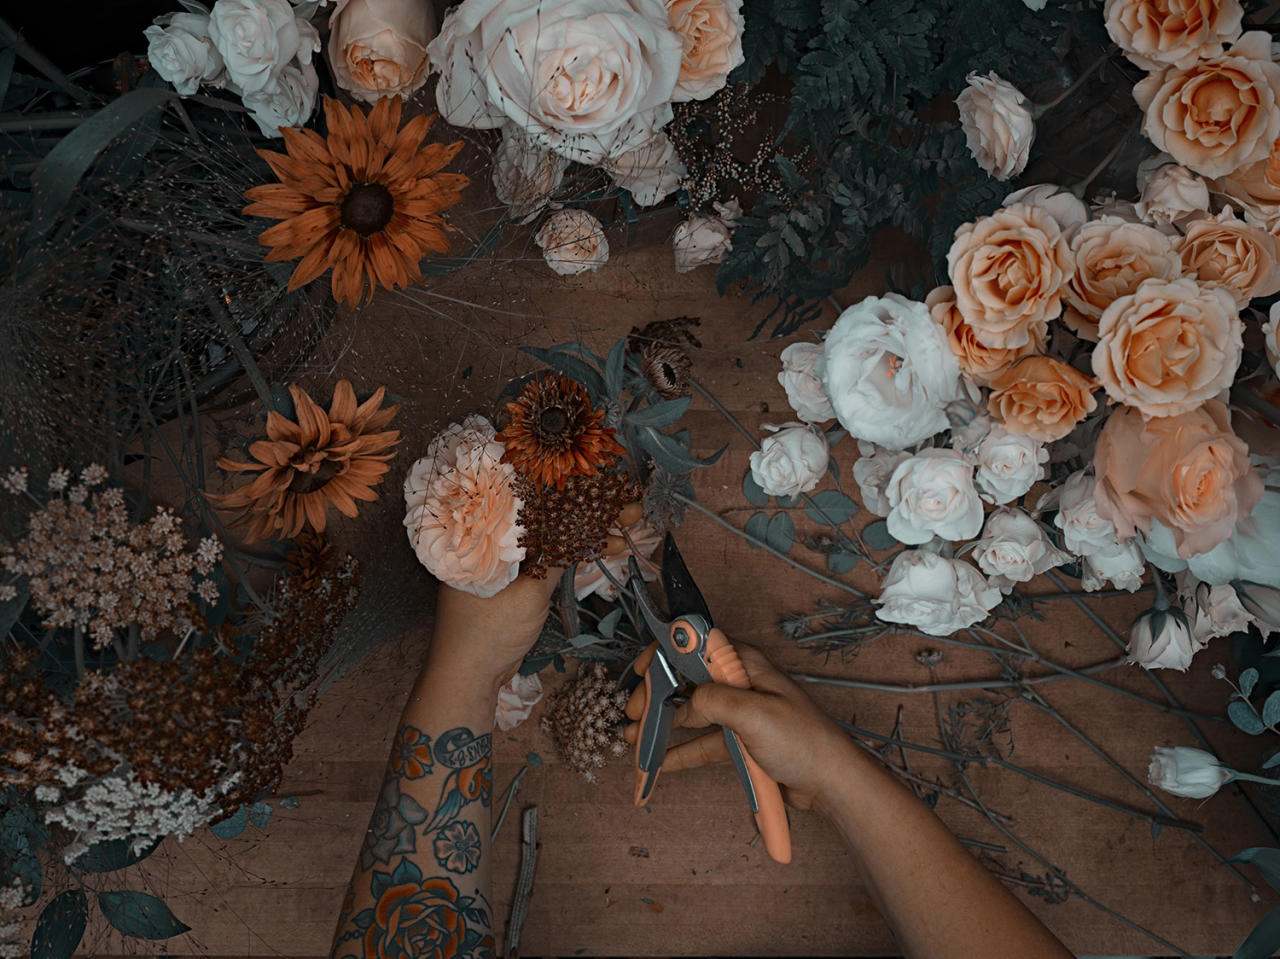 <p><b>Kirsten — florist </b><br /> Many hands make light work, and in this photographer's unique series, there are many, many of them. (Photo: Sanwal Deen/Caters News) </p>